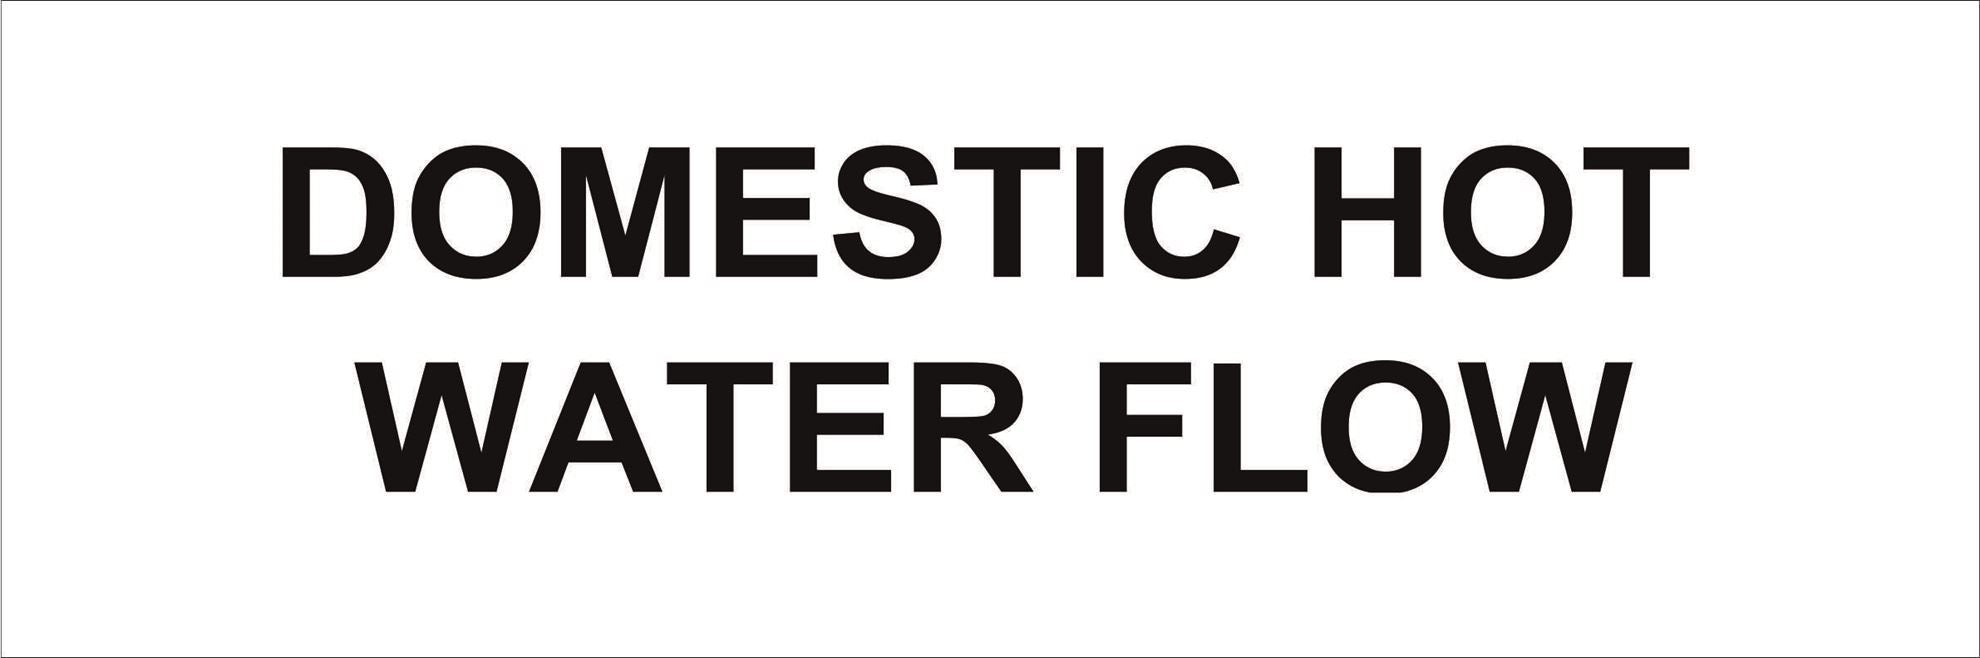 Pipeline Marking Label - DOMESTIC HOT WATER FLOW